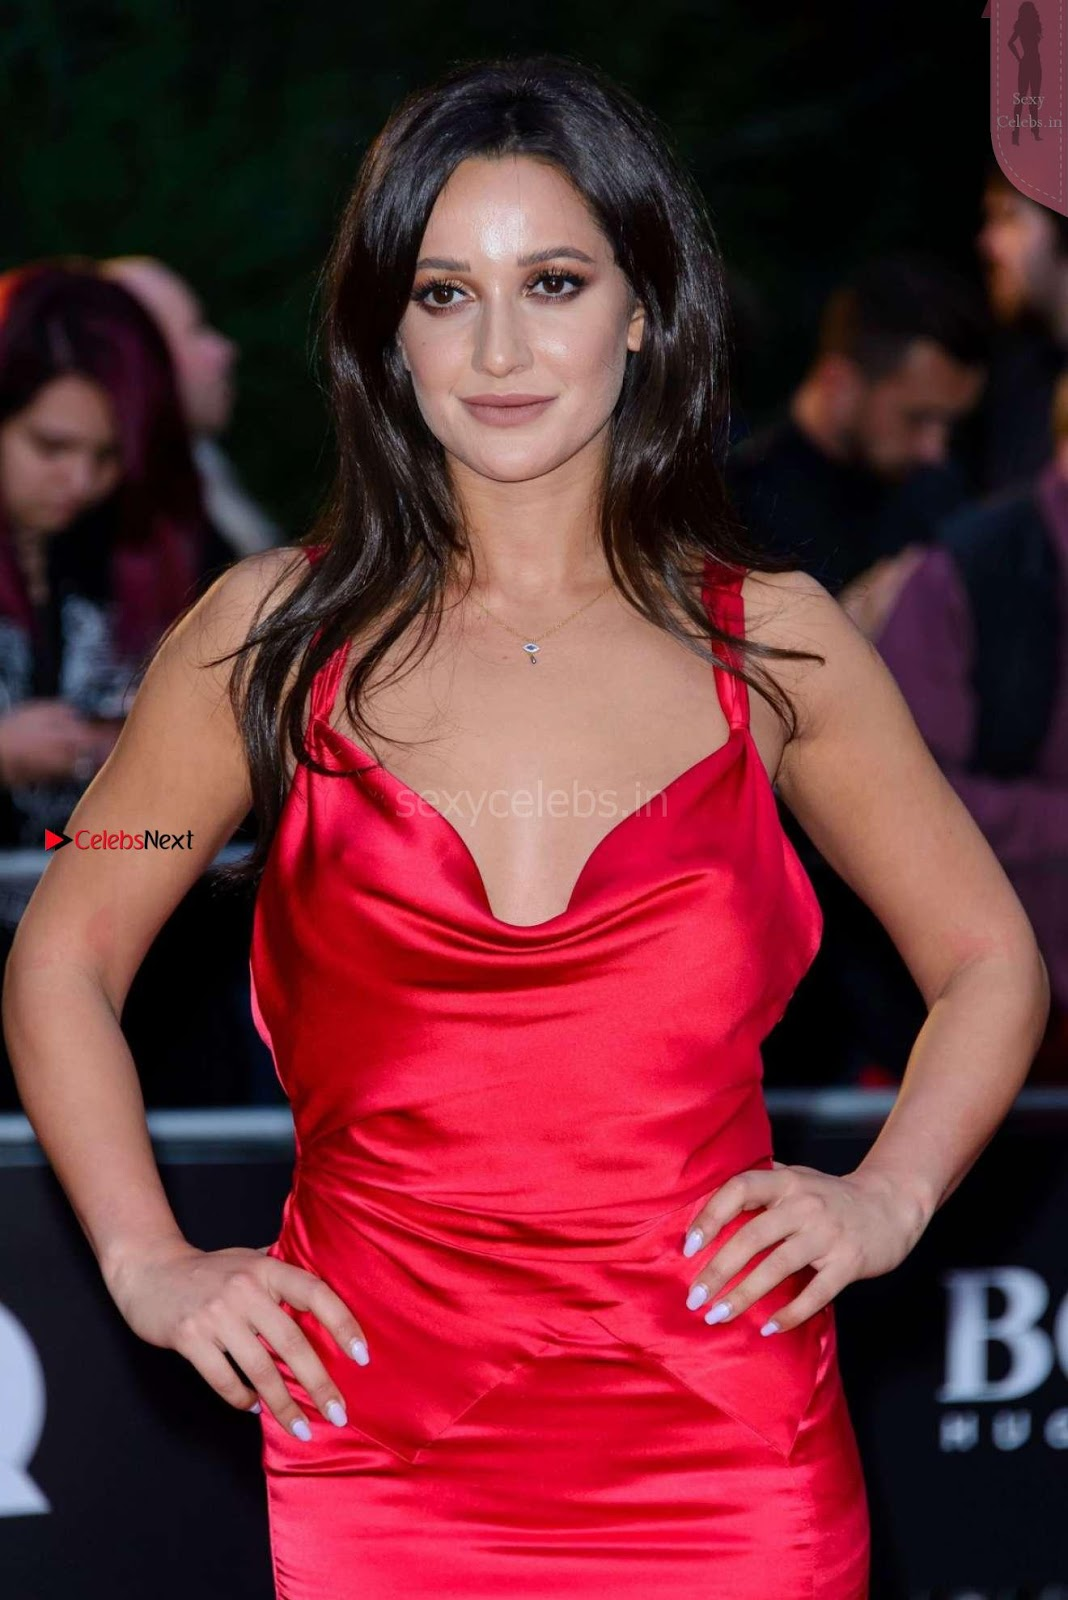 Roxie Nafousi suffers embarrassment as her dress exposes her tits at 2017 GQ Men of the Year awards in London Sep 2017